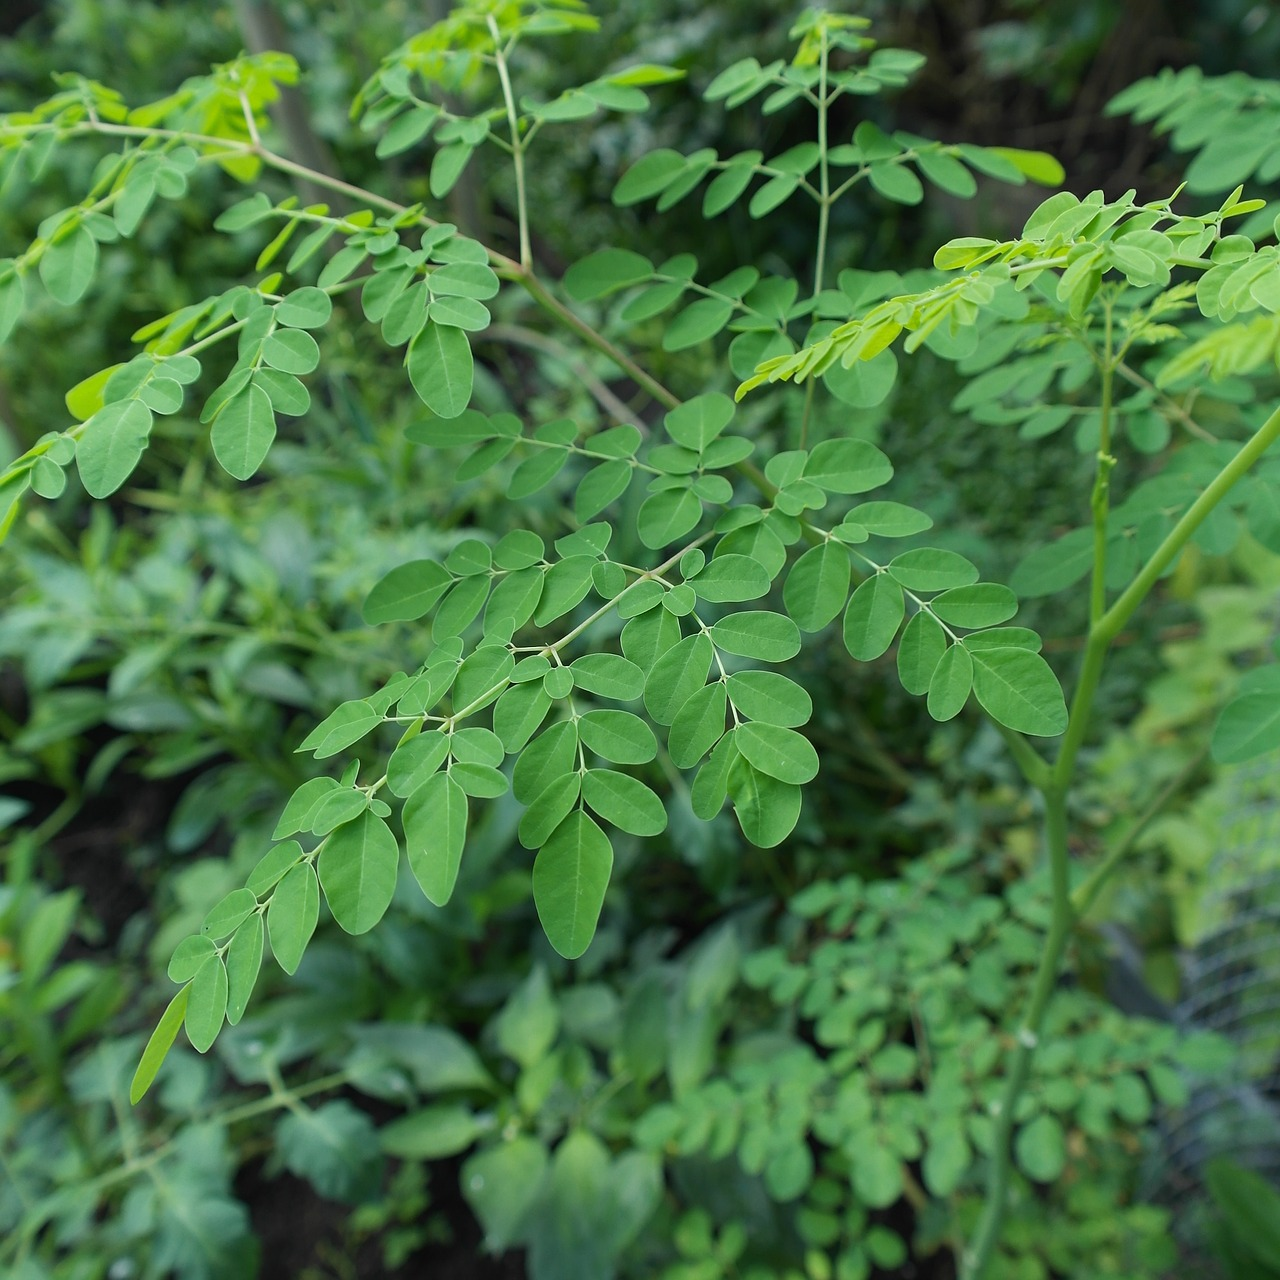 MORINGA: THE MIRACLE PLANT